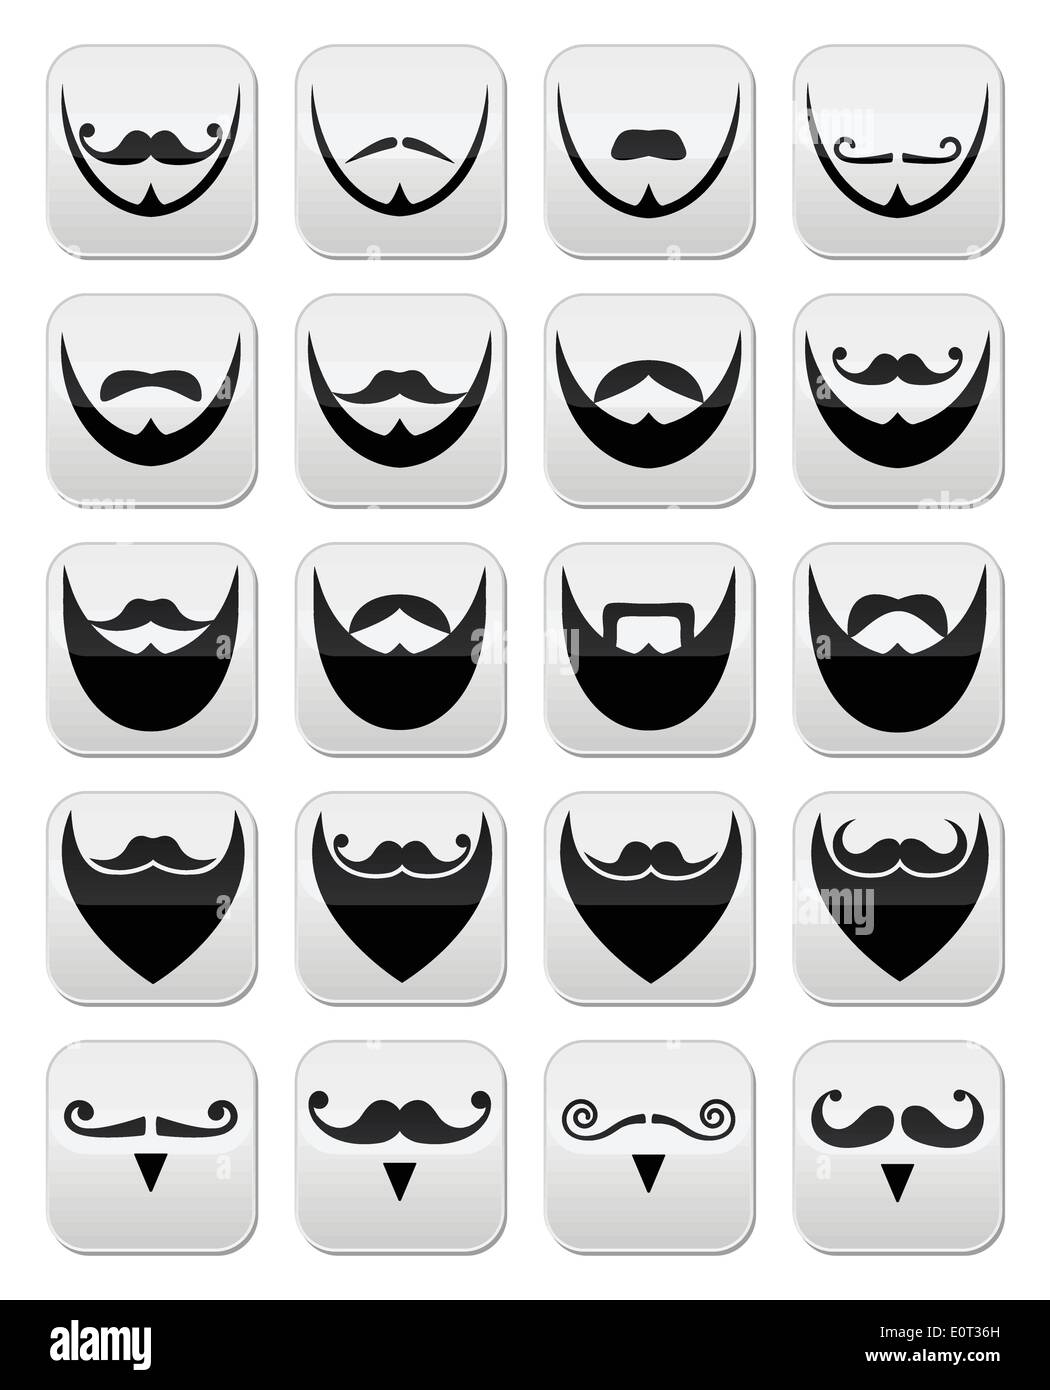 Beard with moustache or mustache vector icons set - Stock Image